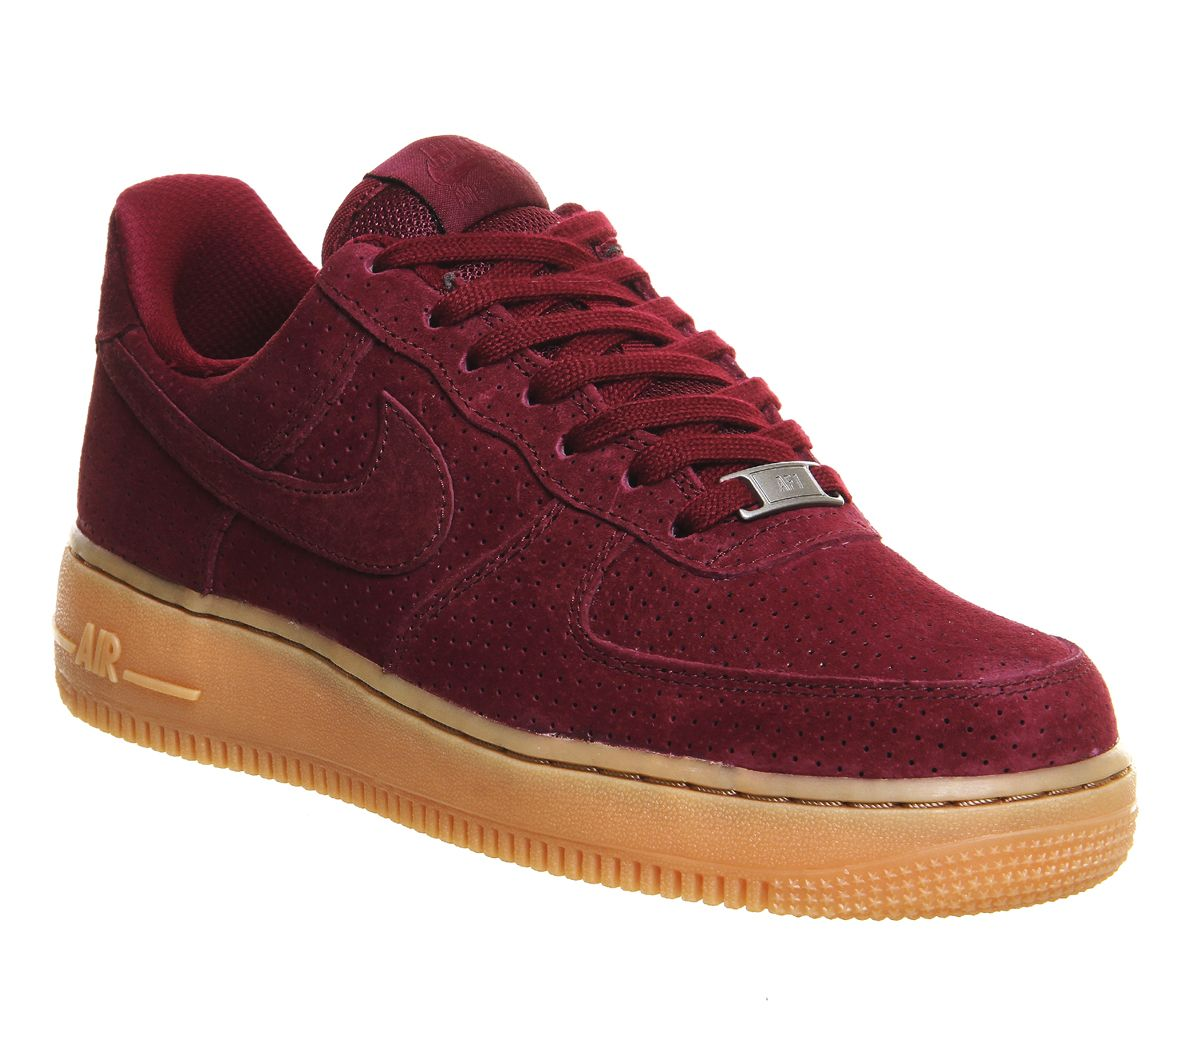 details for factory authentic great deals Buy Deep Garnet Gum Suede Nike Air Force 1 '07 Prm Wmns from ...